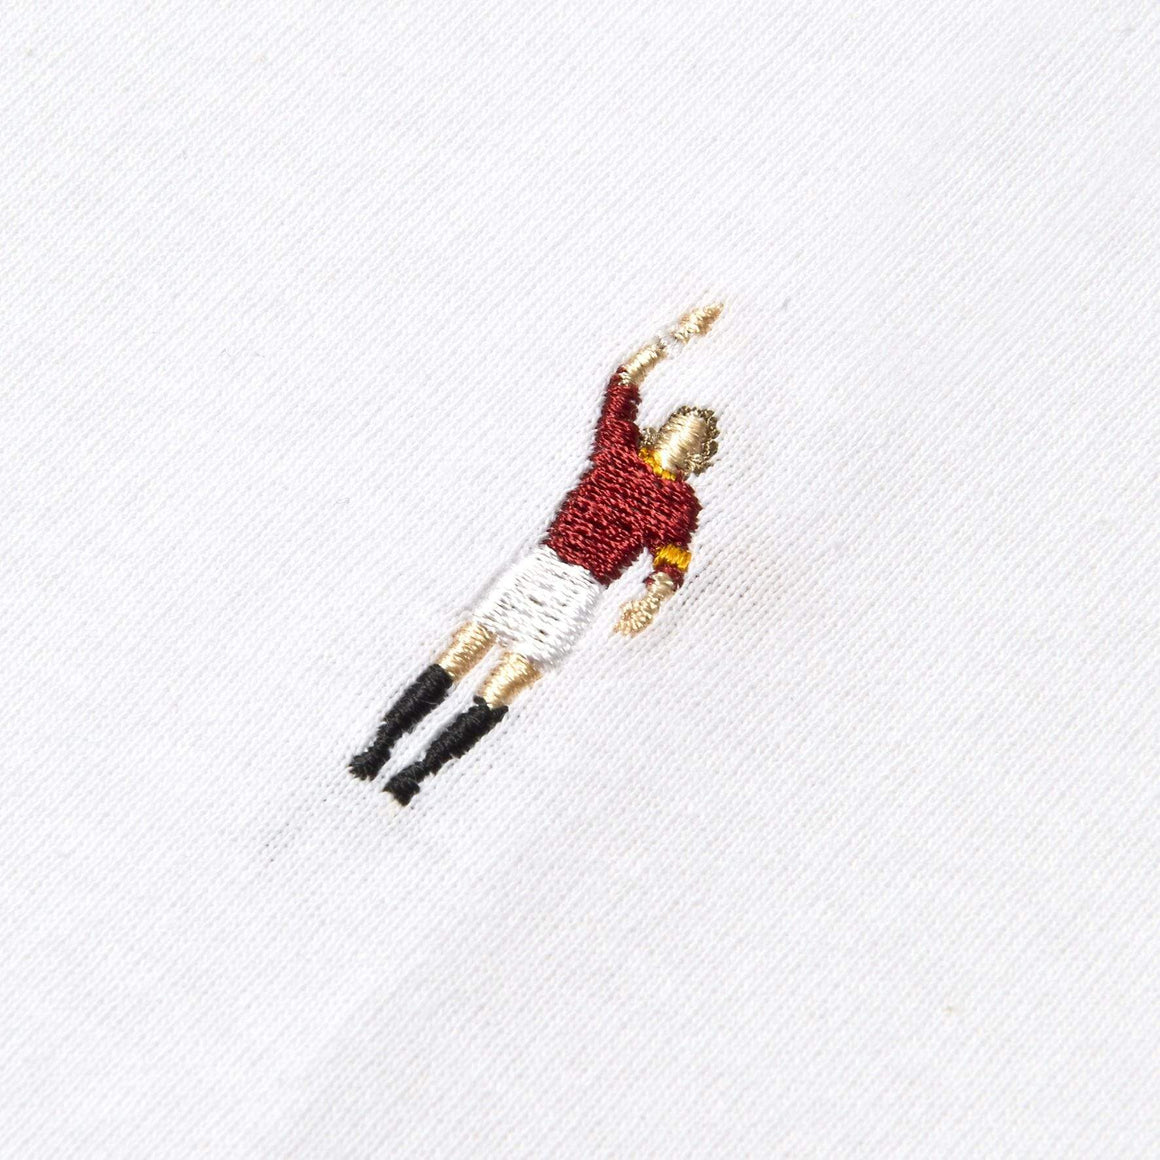 TOTTEE WHITE - Football Shirt Collective